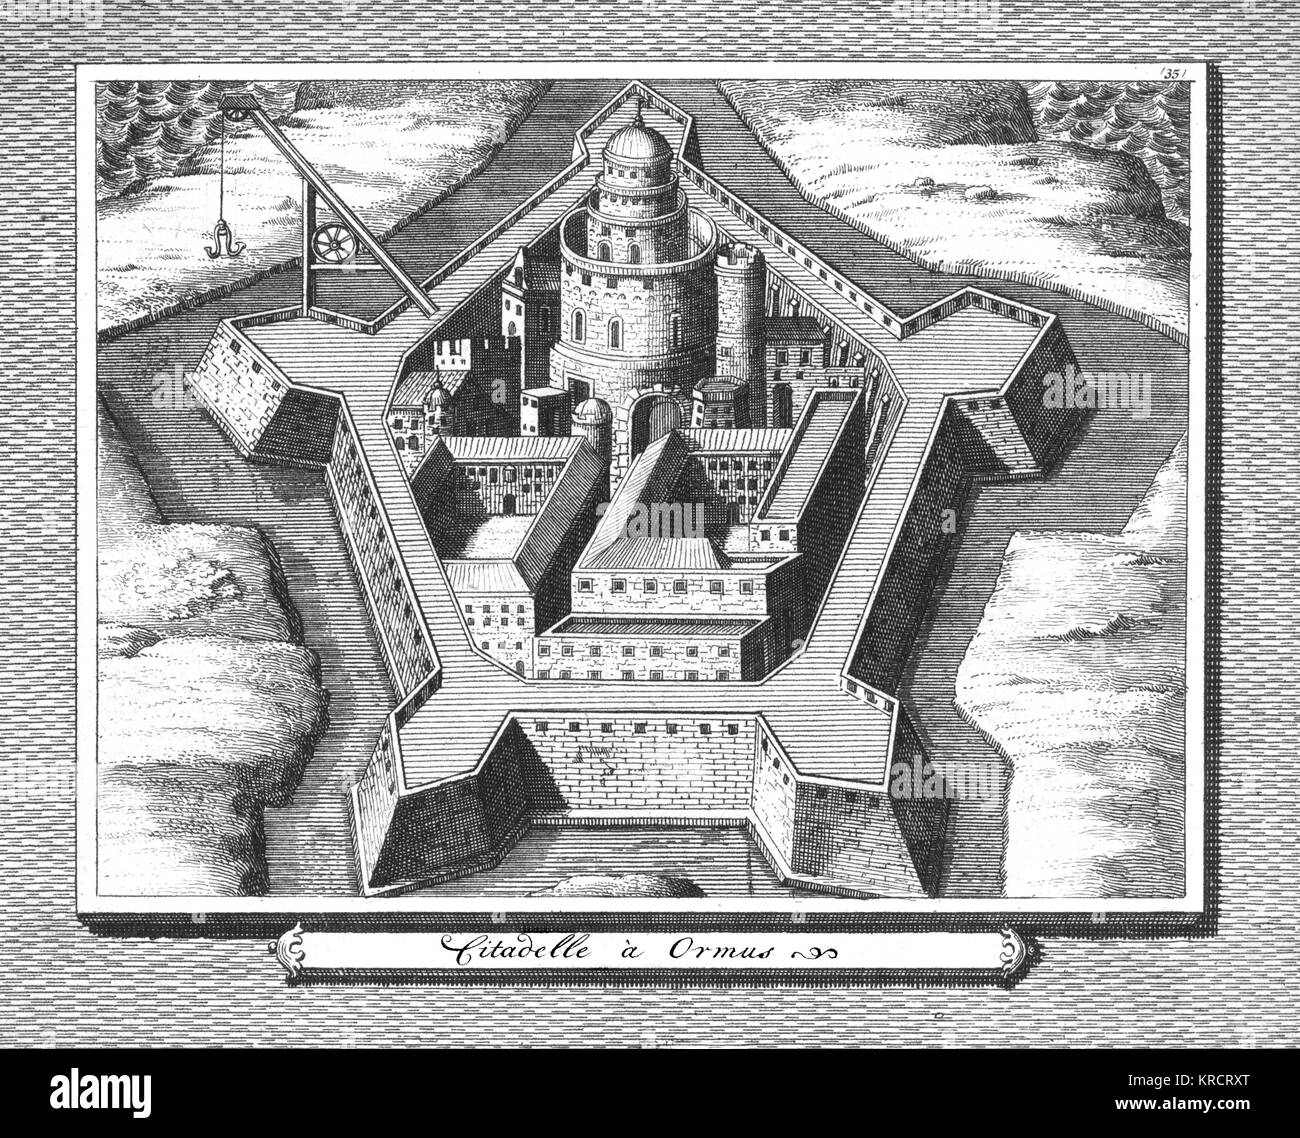 From 1514 the Portuguese controlled this trading centre, constructing this citadel which was taken in 1622 by Persians - Stock Image